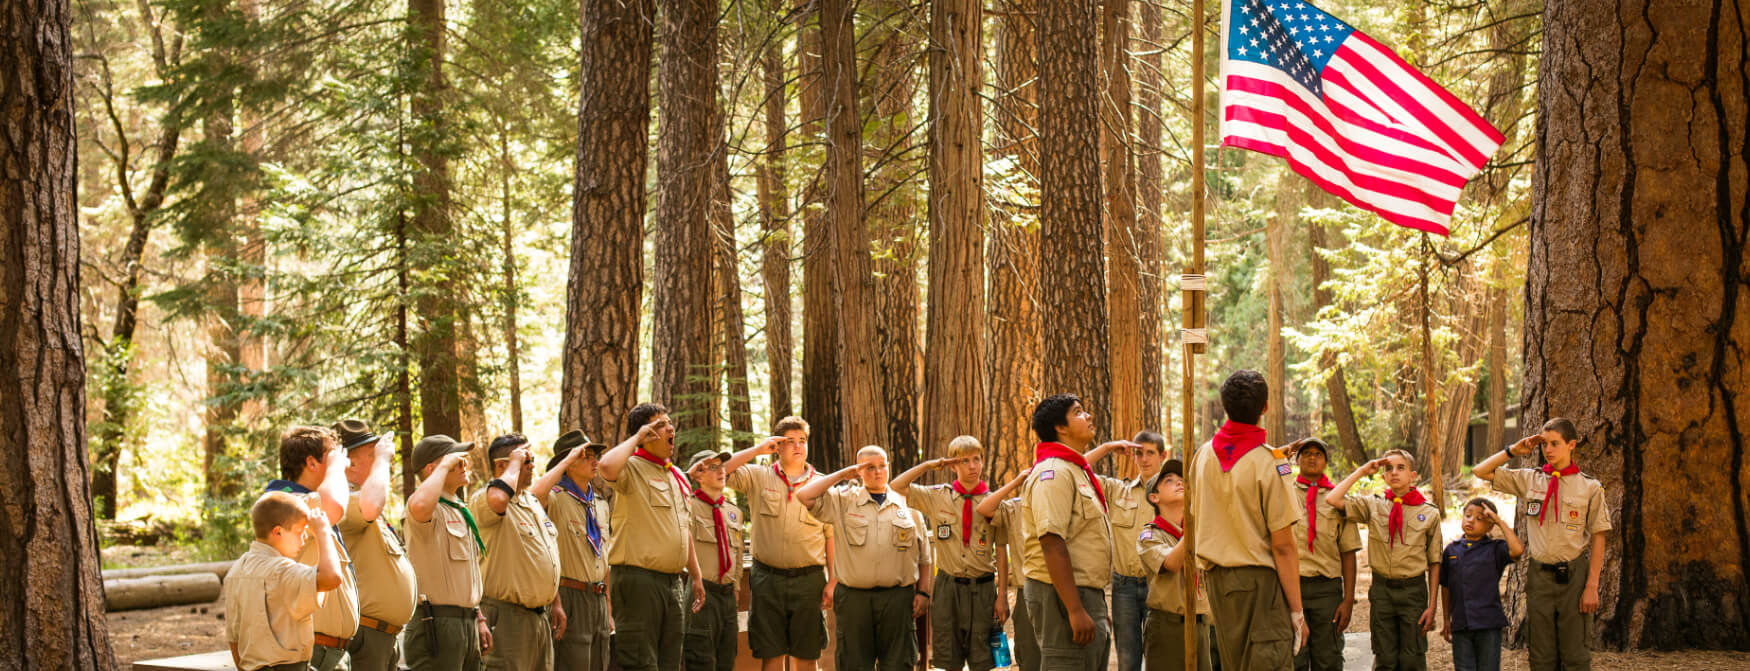 Scouts saluting the flag